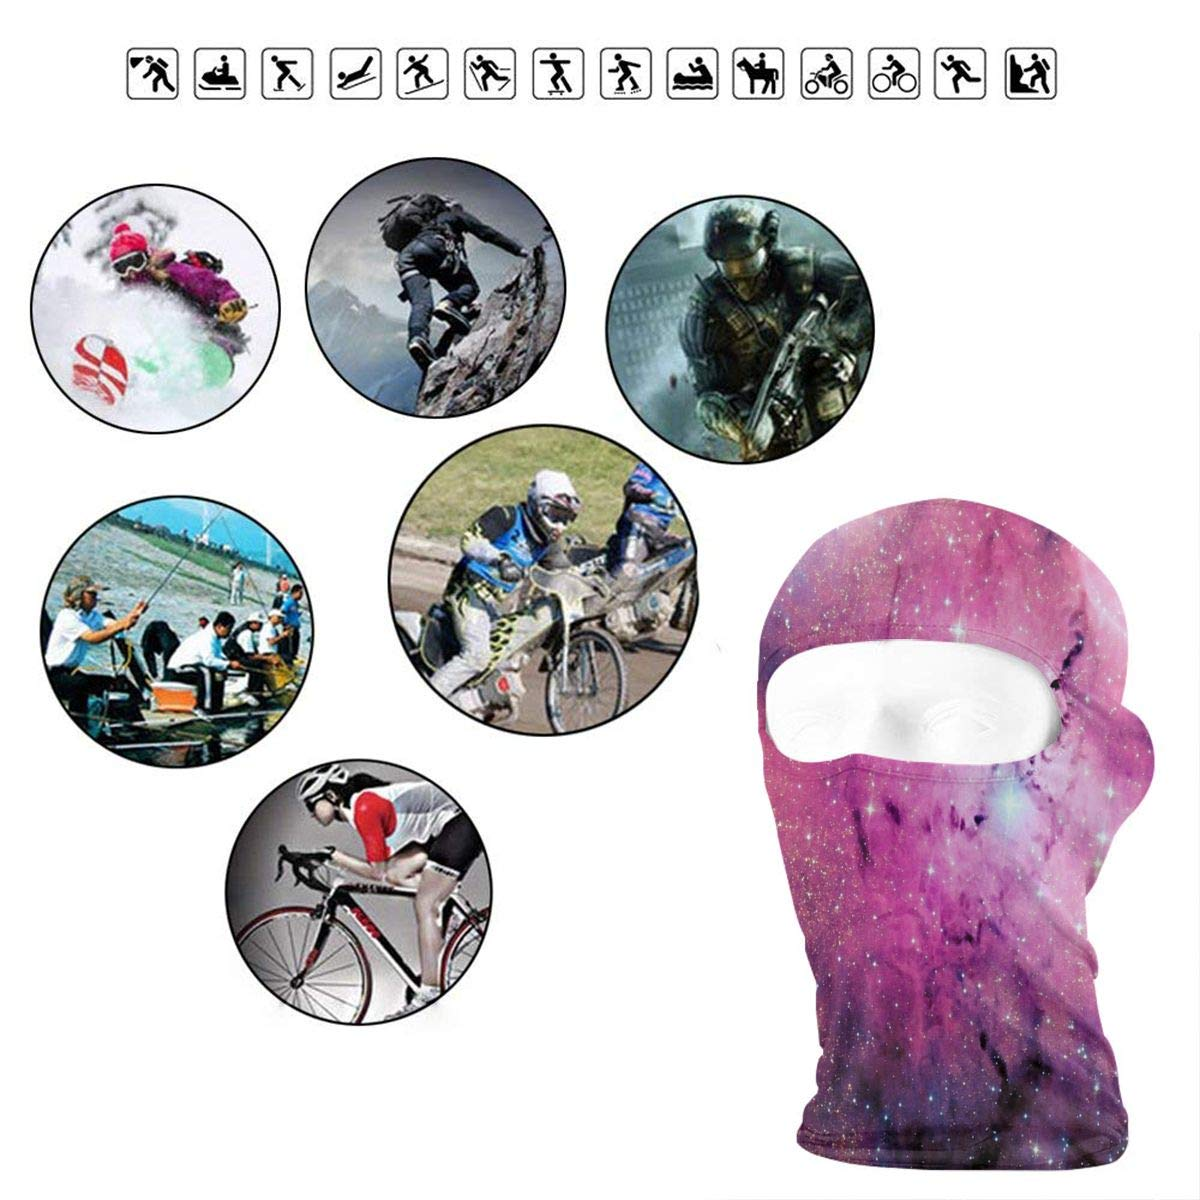 LoveBea Balaclava Pink Space Galaxy Full Face Masks Ski Mask Motorcycle Hood for Cycling Sports Mountaineering